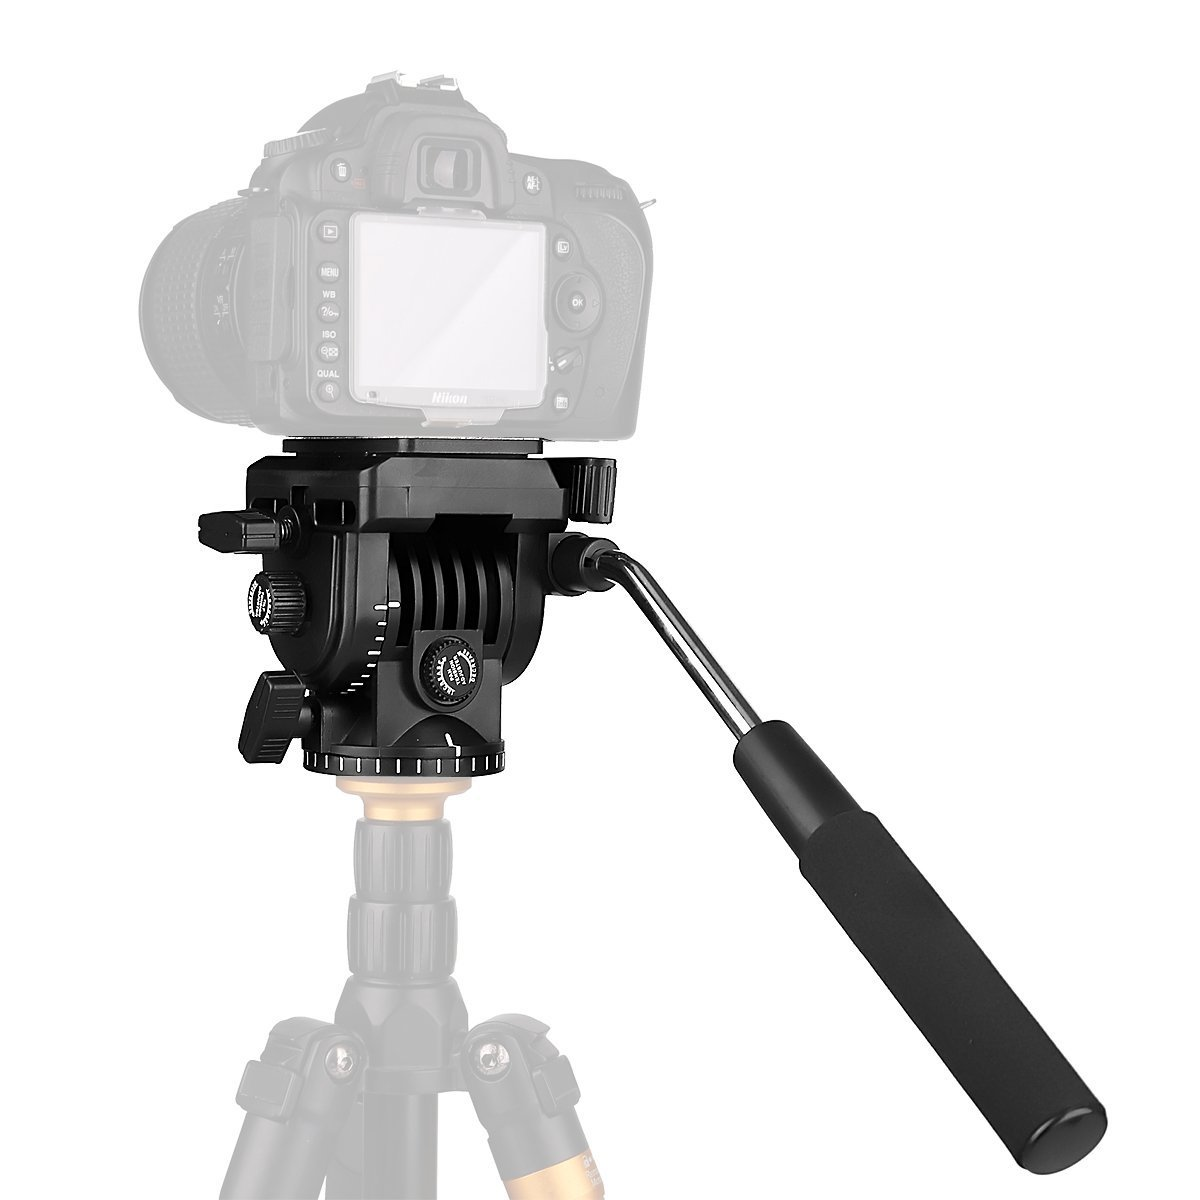 Fluid Head,pangshi VT-1510 Video Camera Tripod Action Fluid Drag Pan Head with 1/4'' Screws Sliding Plate for Canon Nikon Sony DSLR Camera Camcorder Shooting Filming by pangshi